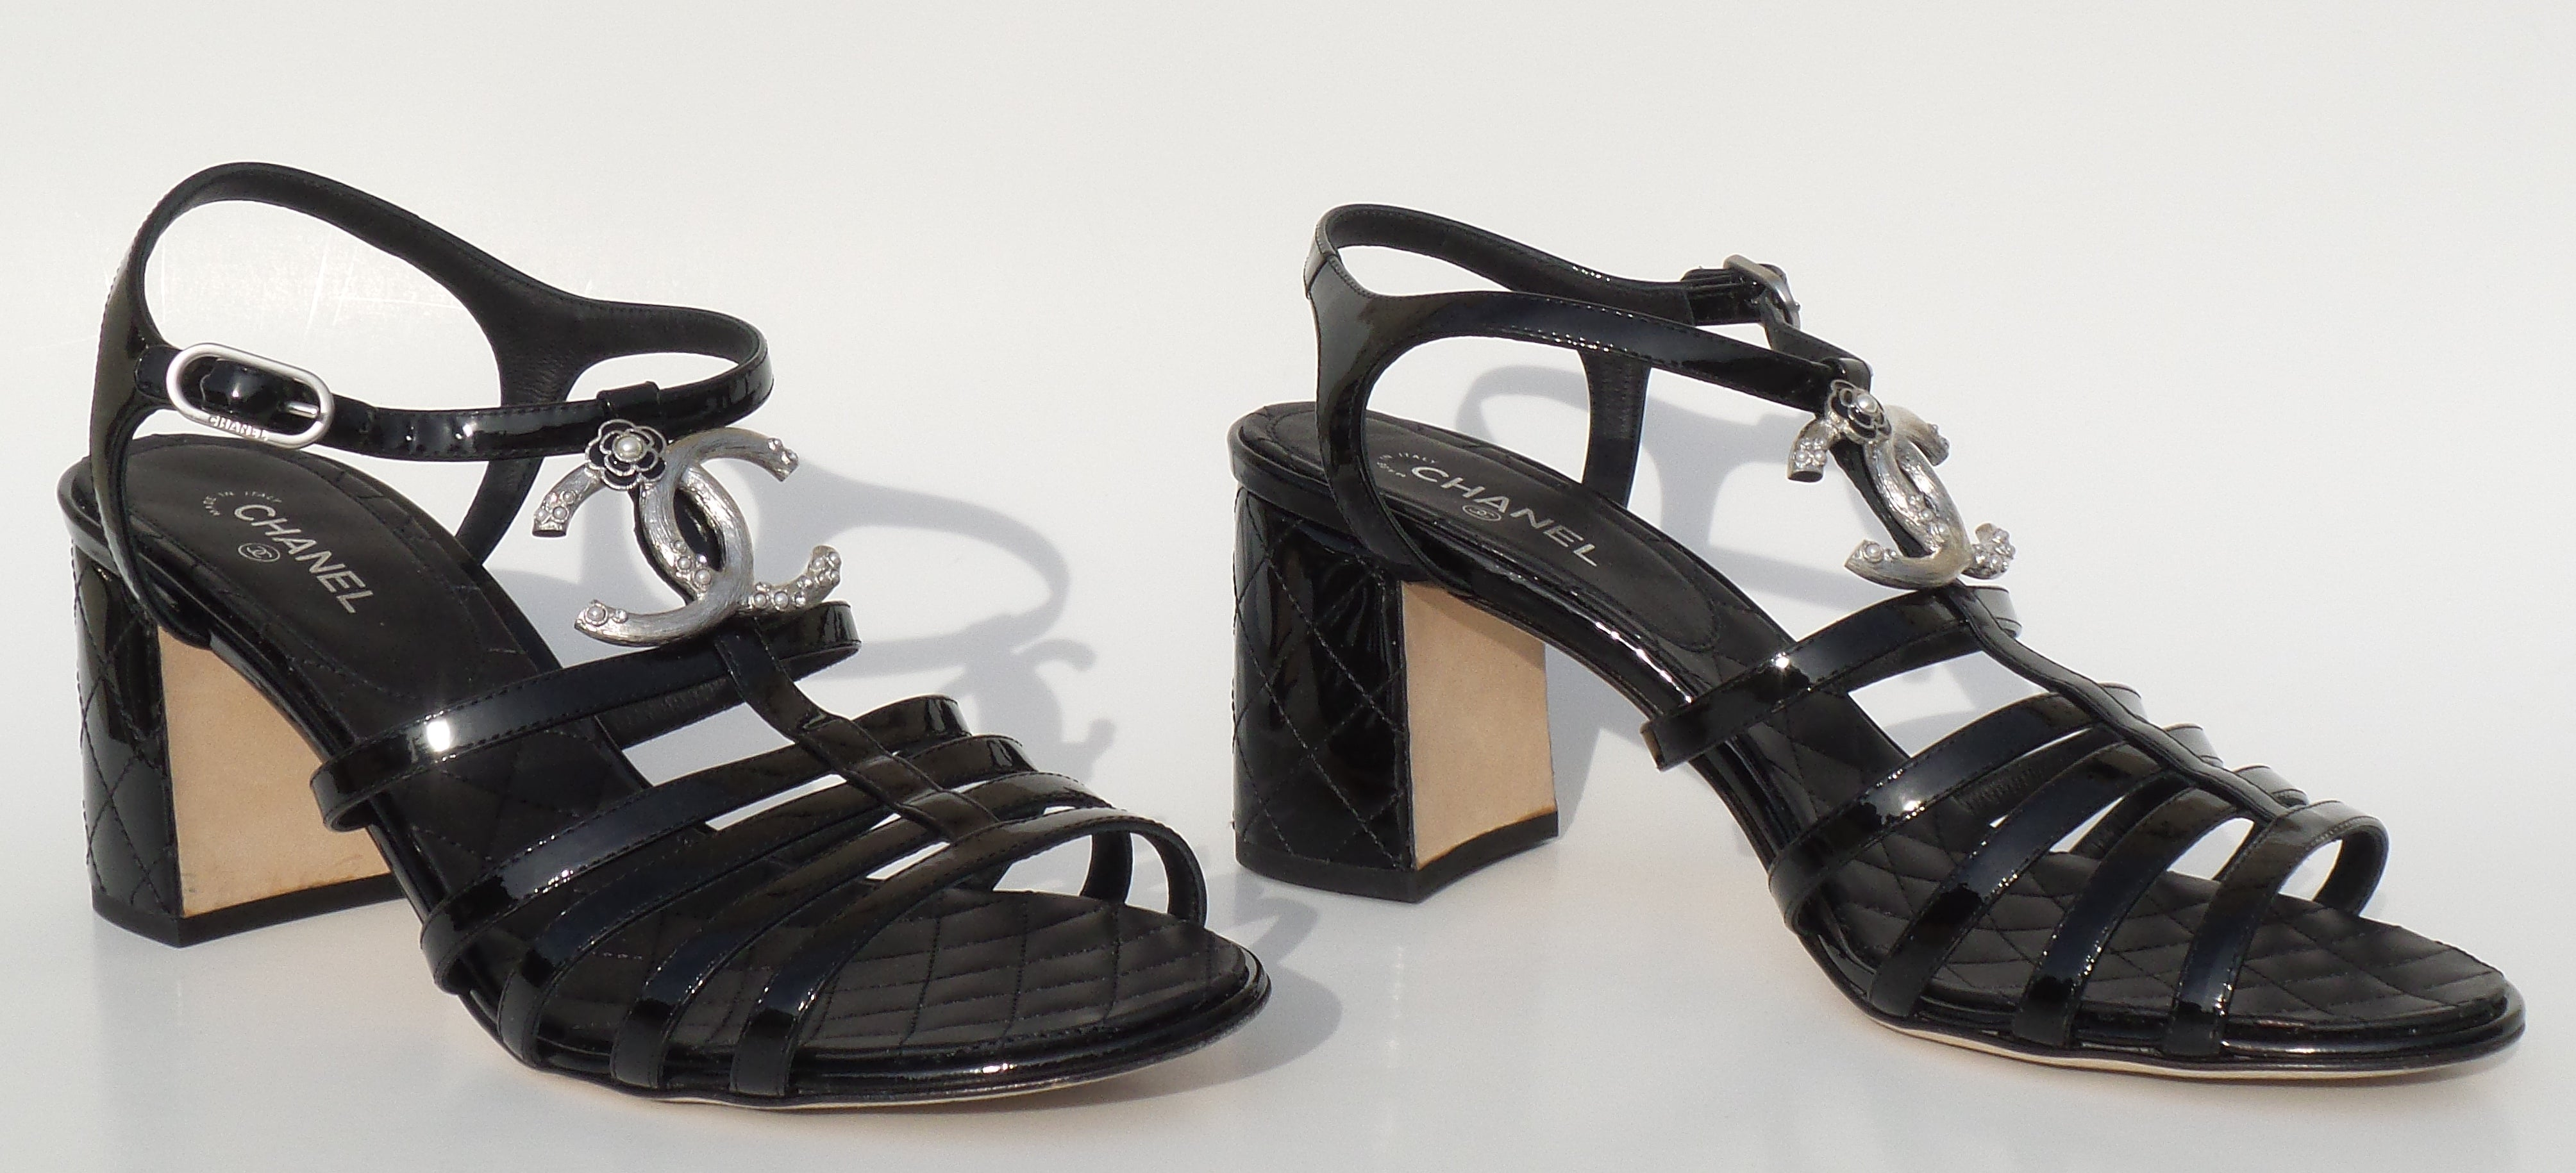 0e23b31f021  Sold  CHANEL 17P Black Patent Leather Pearl Silver CC Quilted Block Heel  Sandals 39.5 ·